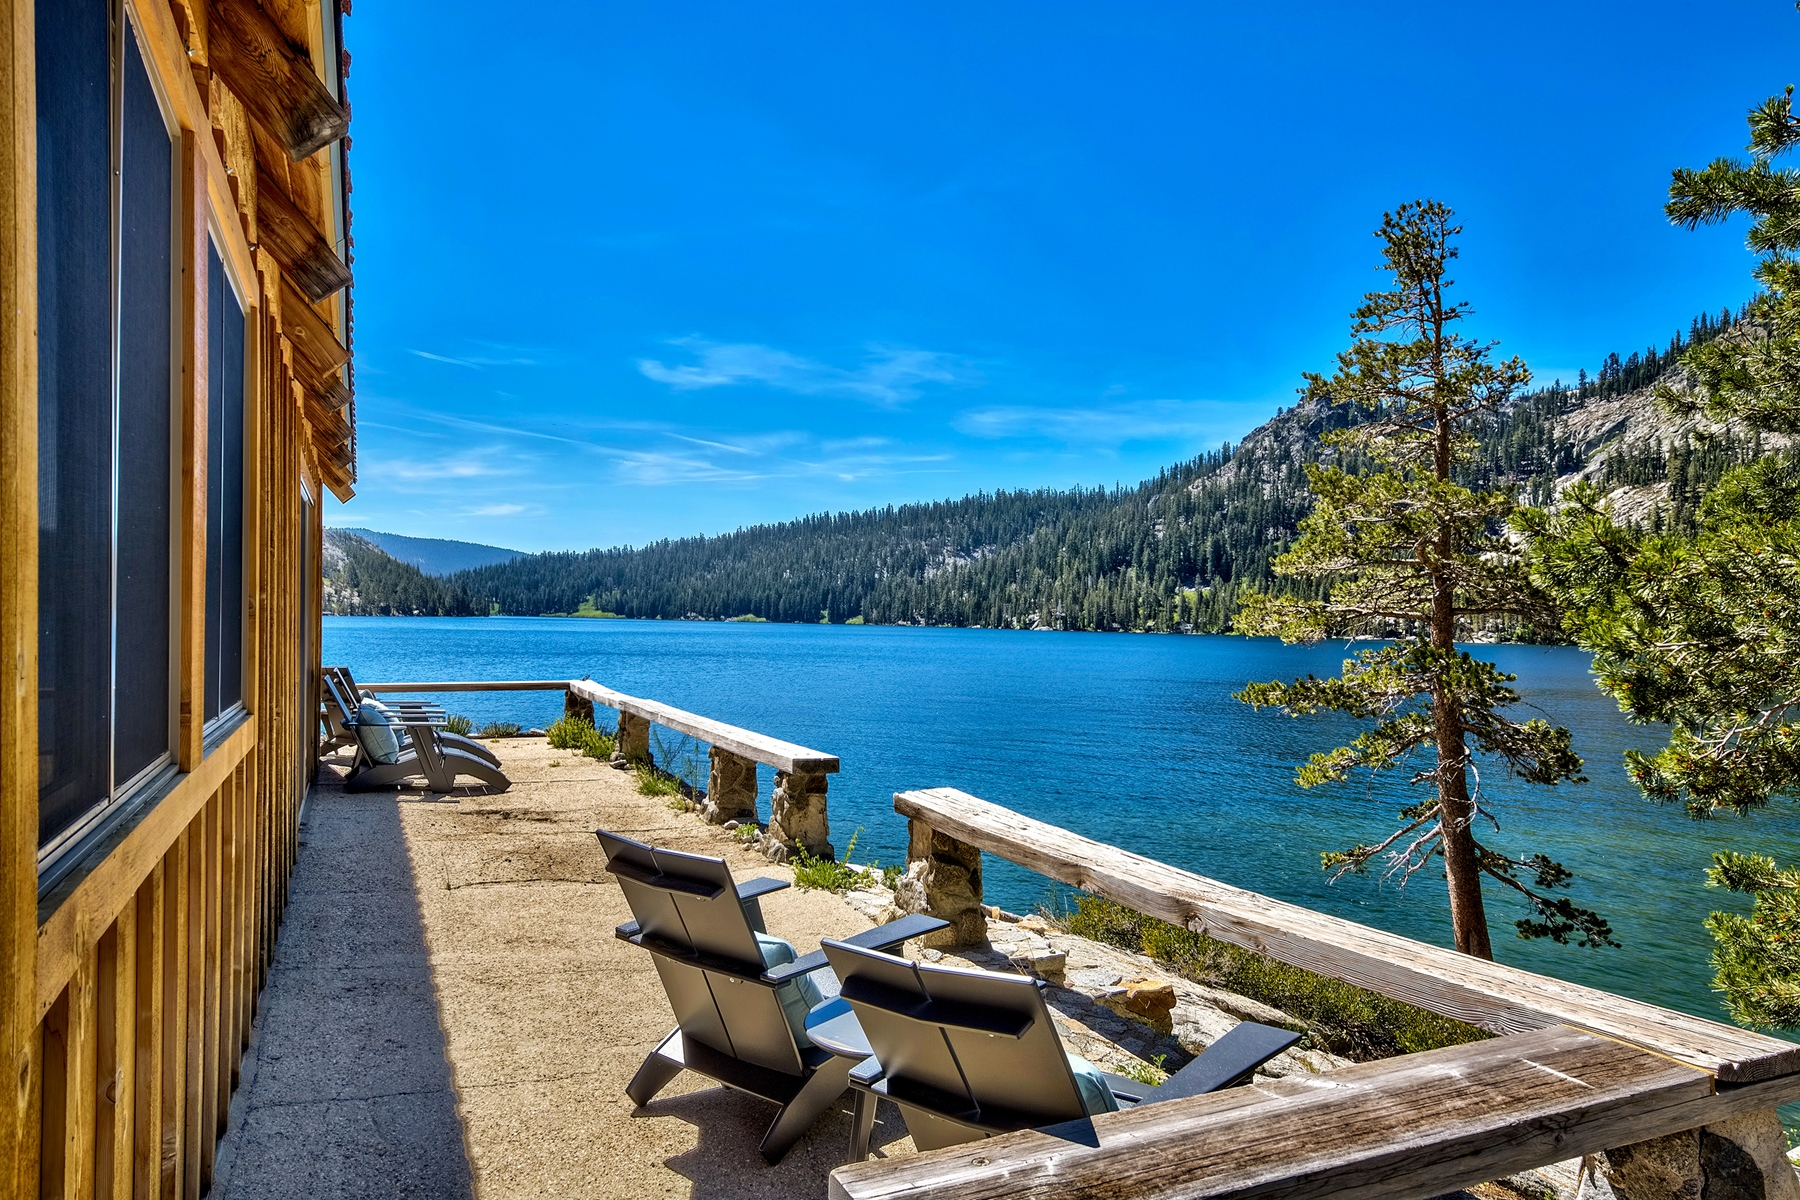 Single Family Homes for Sale at Mermaid Cove, Lot 17,Lower Echo Lake, Echo Lake, CA 95721 Mermaid Cove, Lot 17 Lower Echo Lake Echo Lake, California 95721 United States